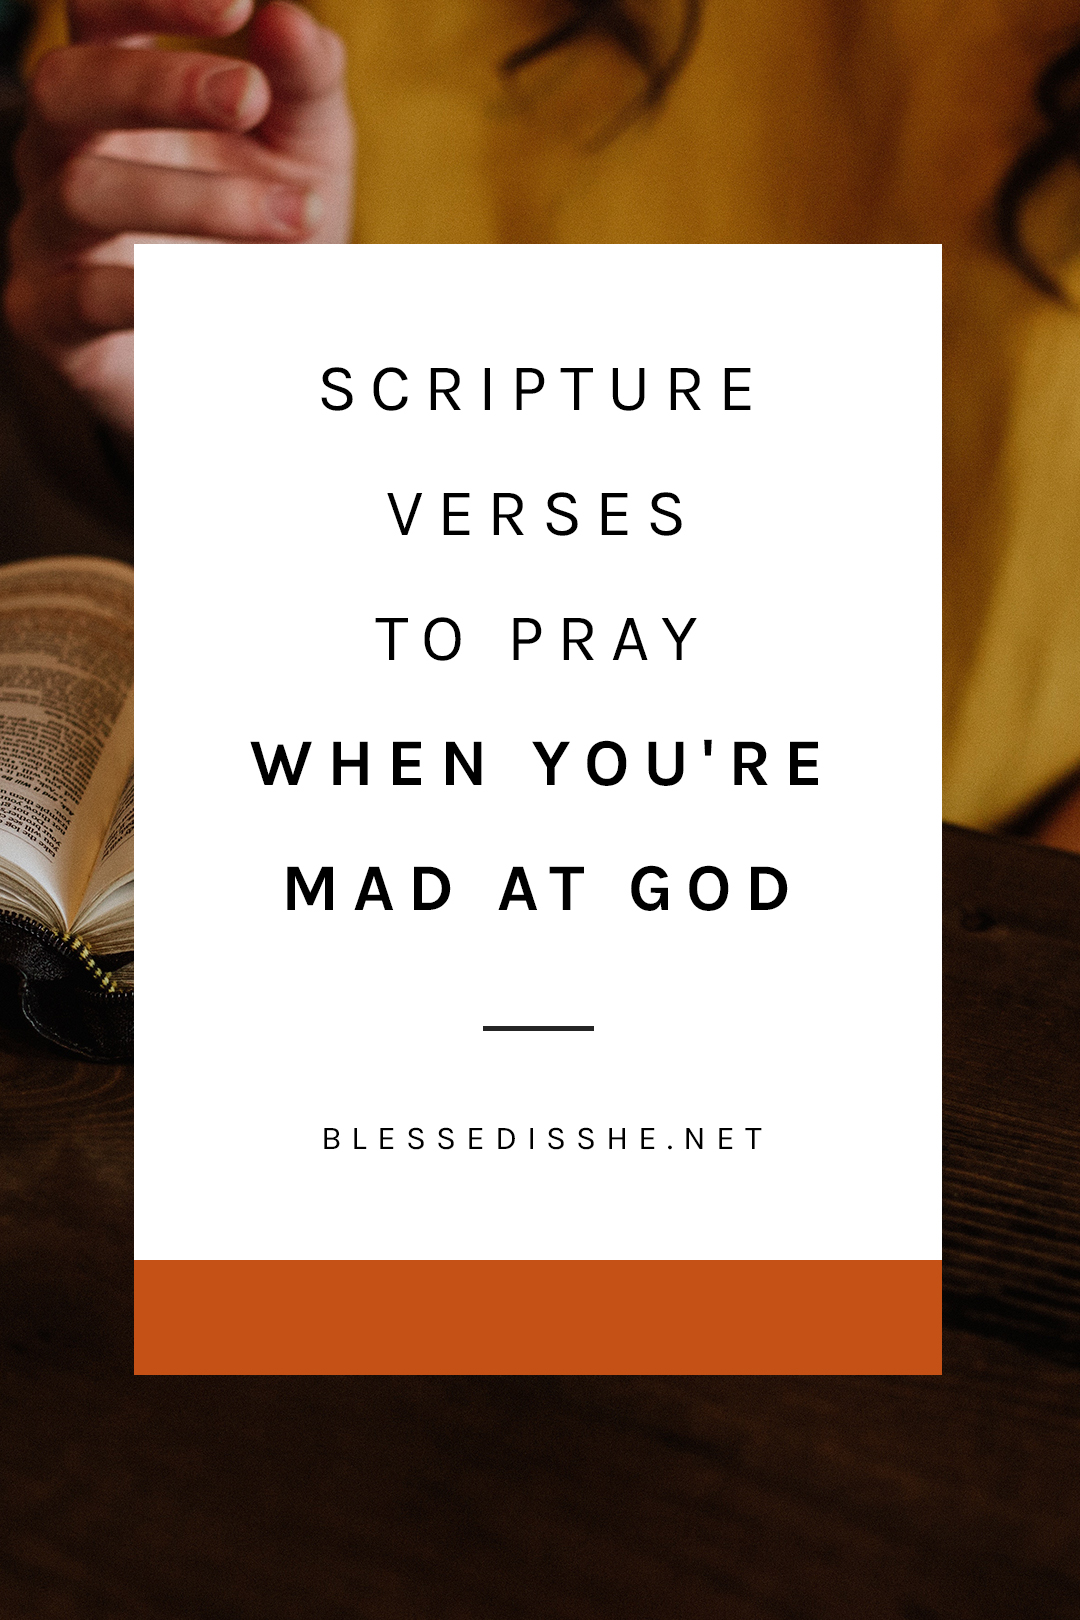 how to pray when you're mad at god